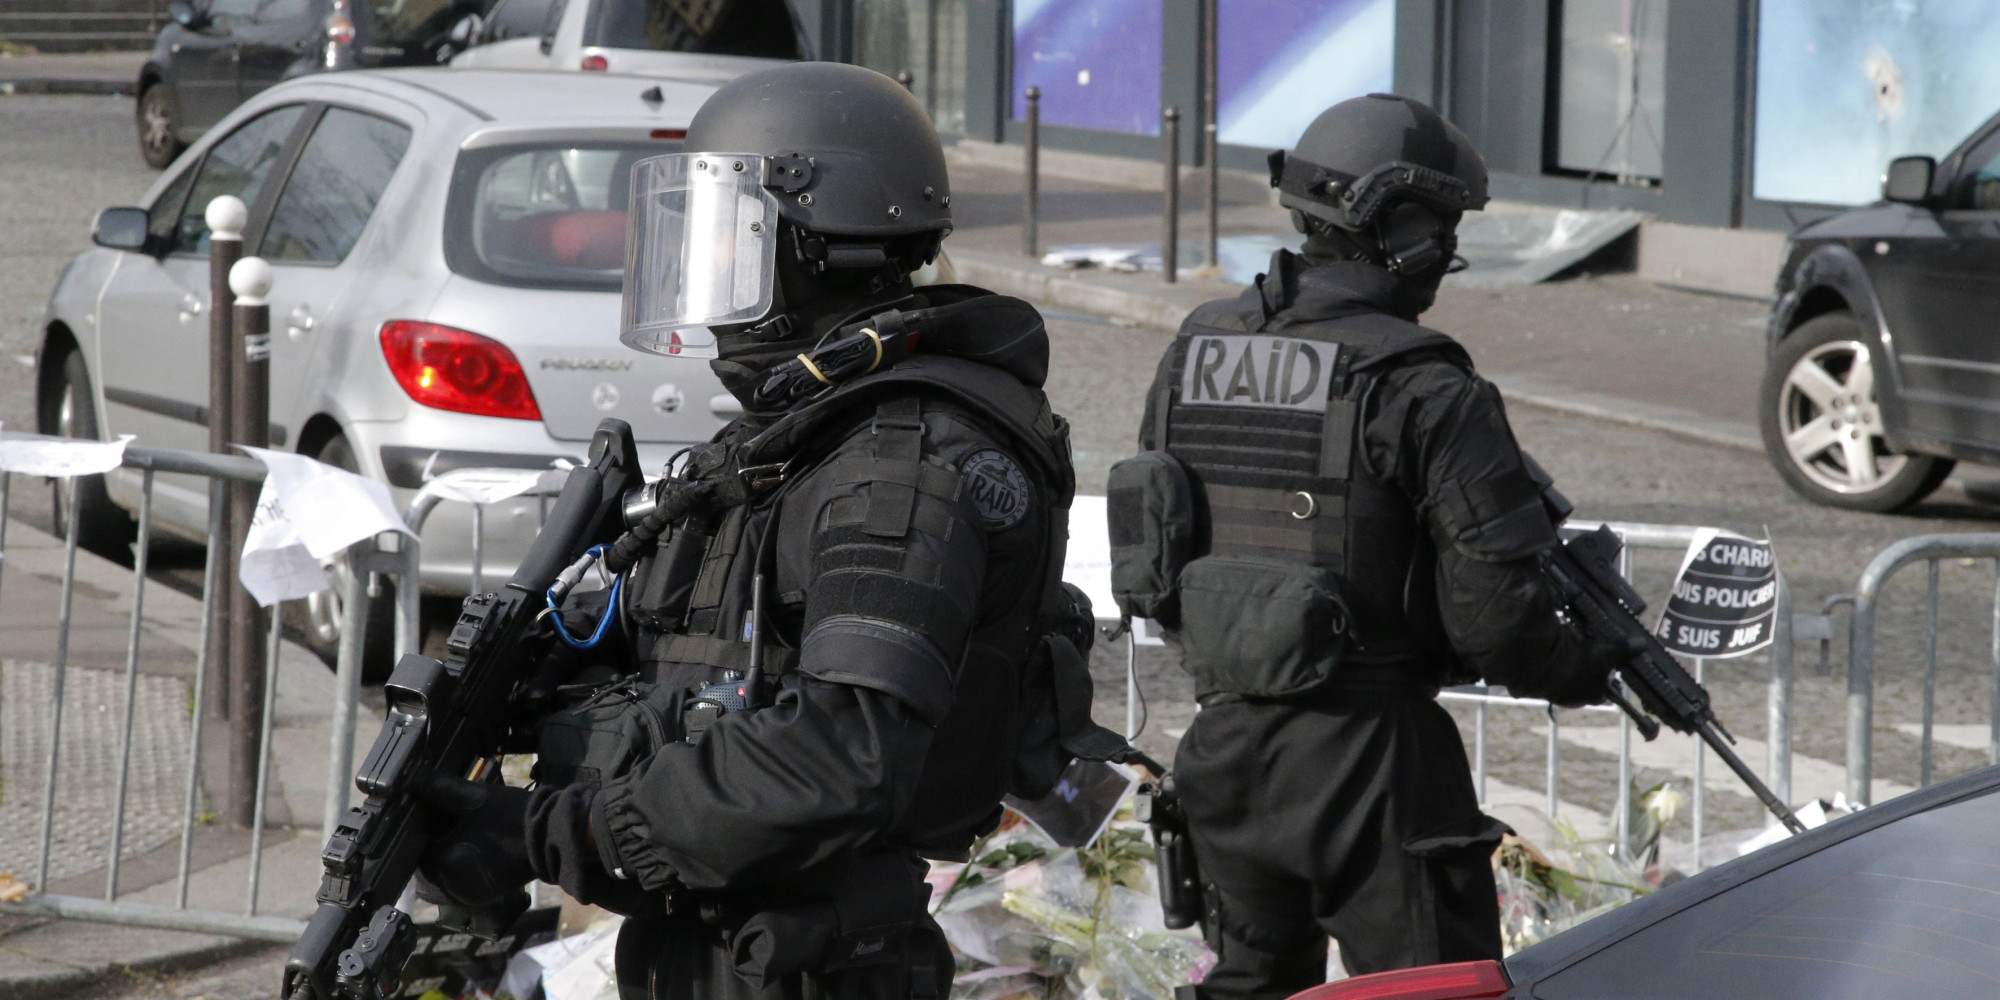 France Europe Arming Police